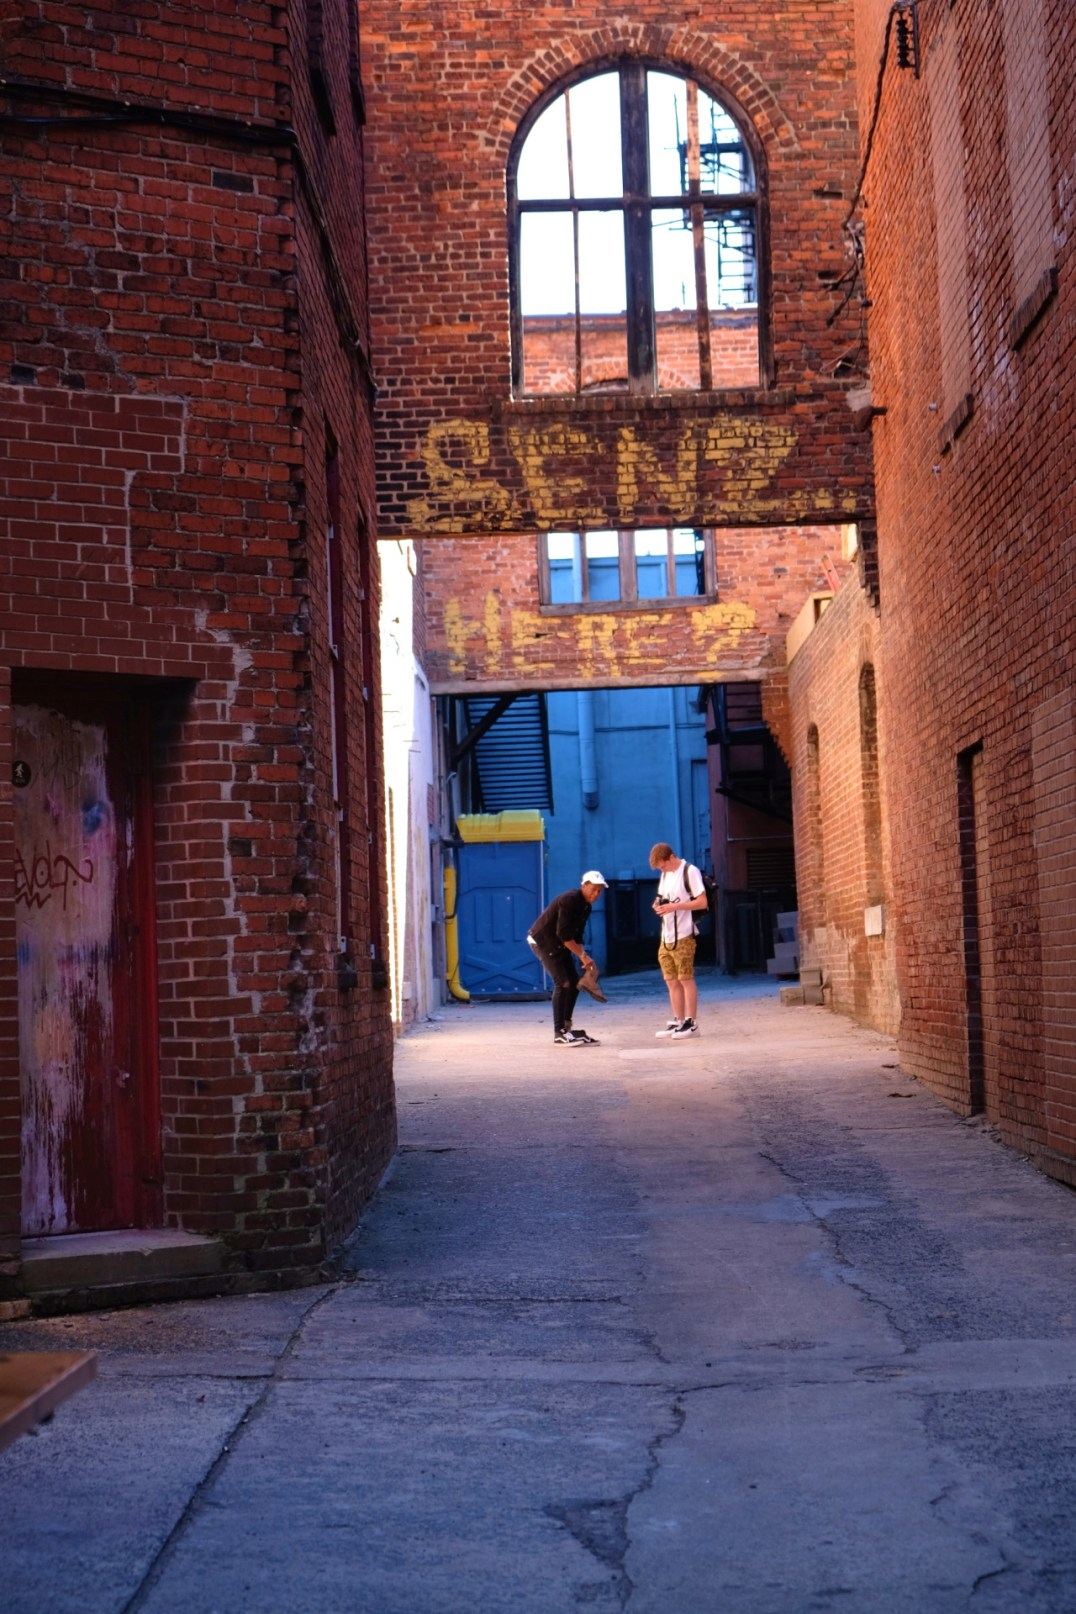 photo of two teen boys in a colorful alleyway